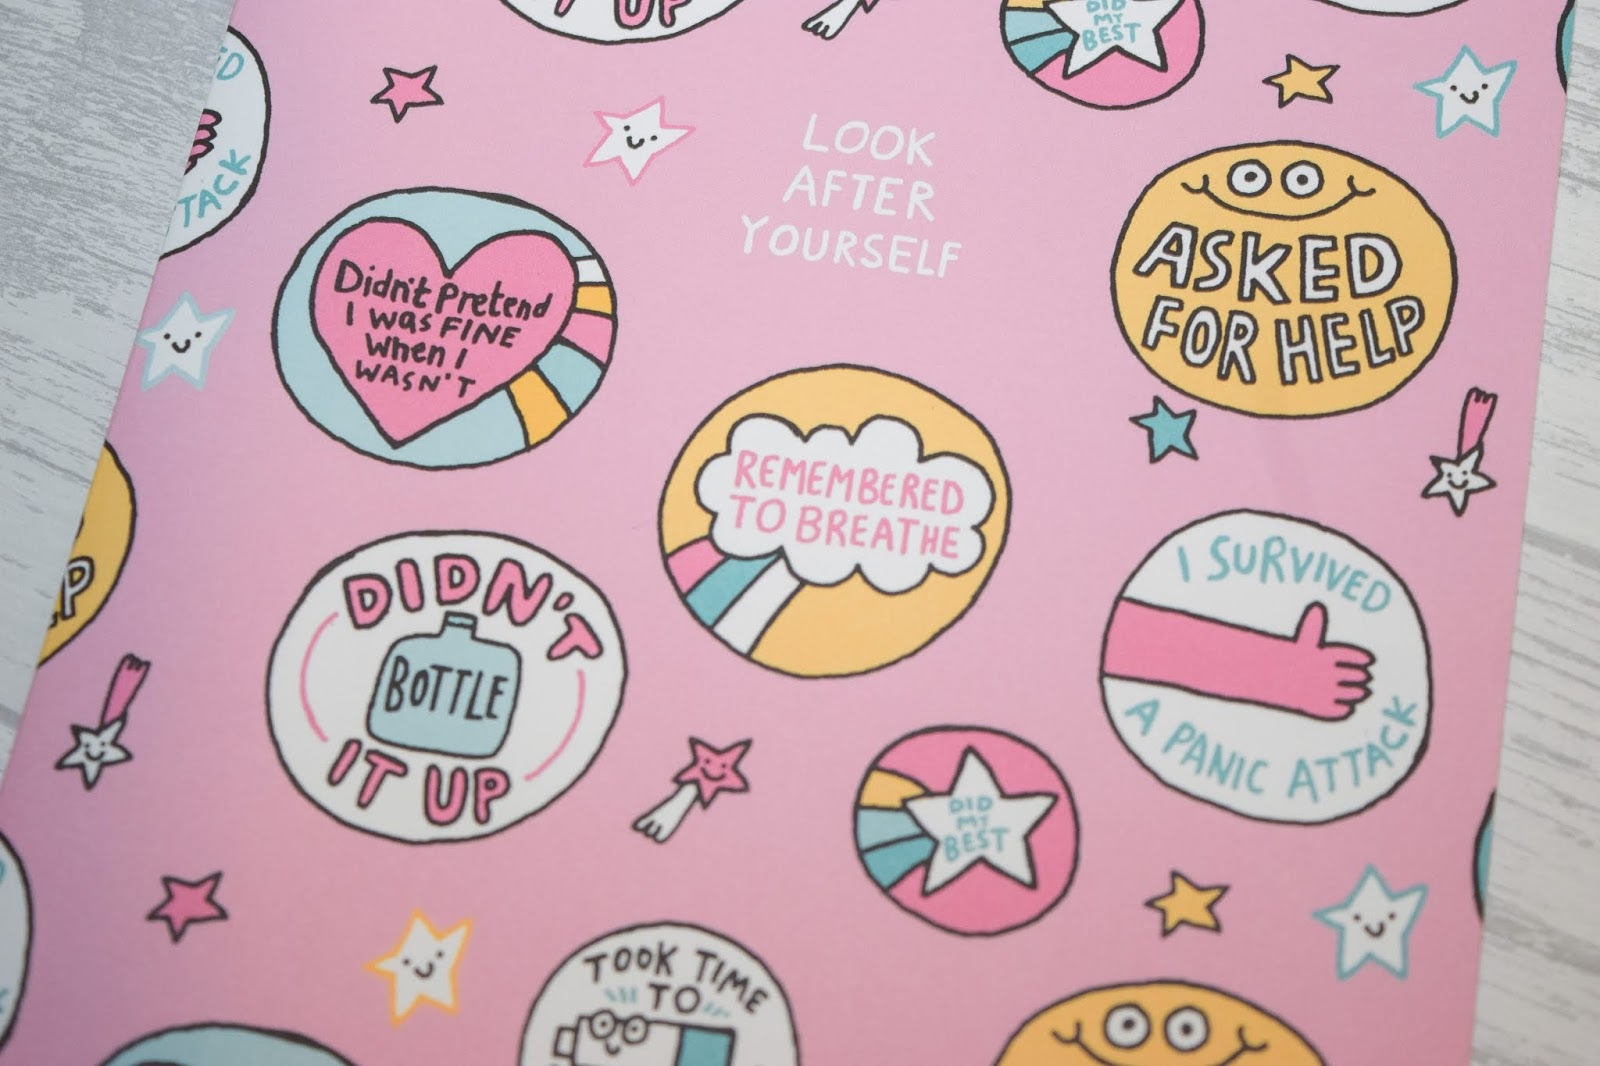 A close up of a pink notebook with round circles filled with motivational phrases.